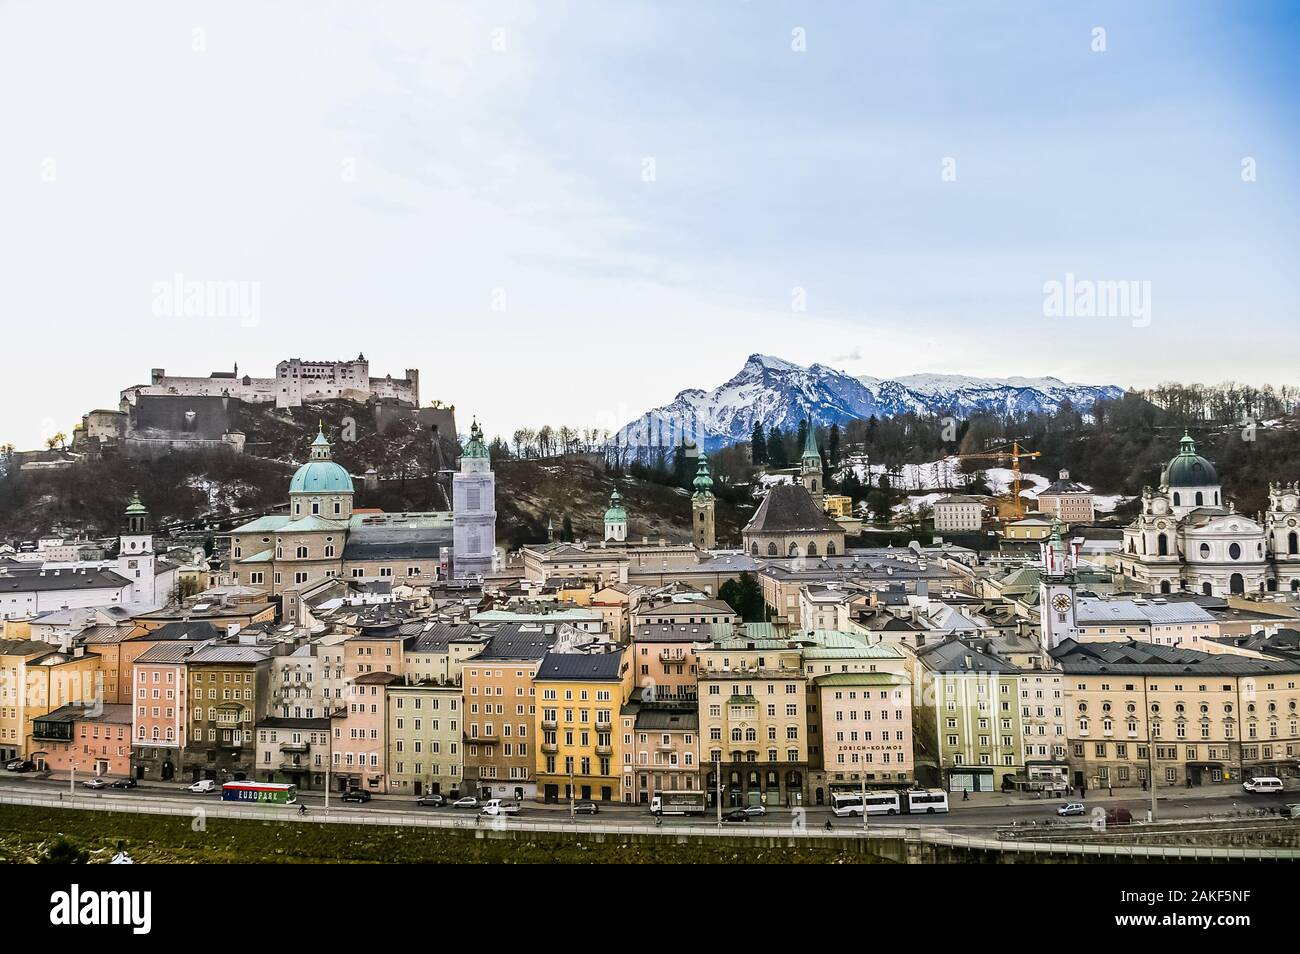 SALZBURG, AUSTRIA - JANUARY 09: Top view on Salzburg city and Hohensalzburg fortress on January 08, 2008 in Salzburg, Austria Stock Photo